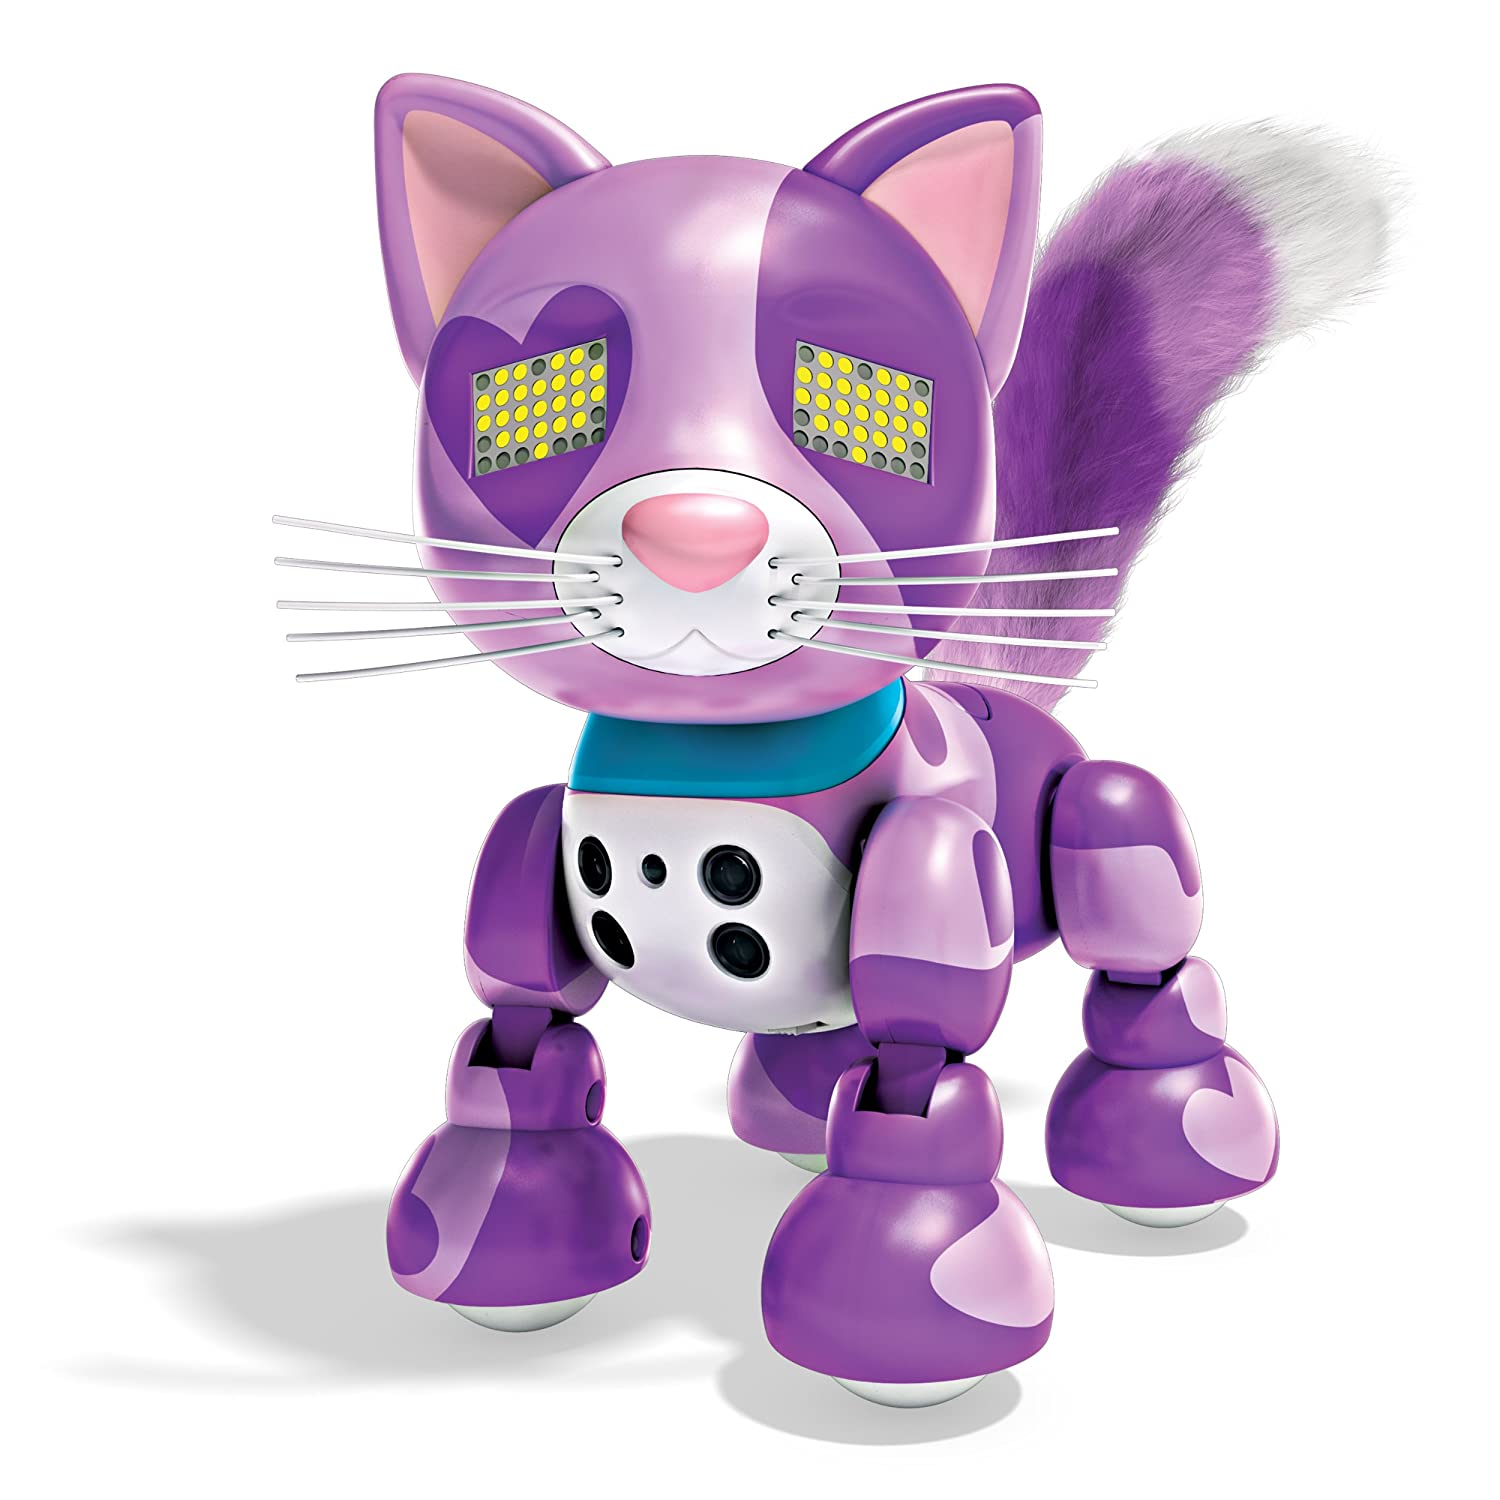 Interactive Kitten with Lights Sounds and Sensors by Spin Master 20074601-6031253 Viola Zoomer Meowzies